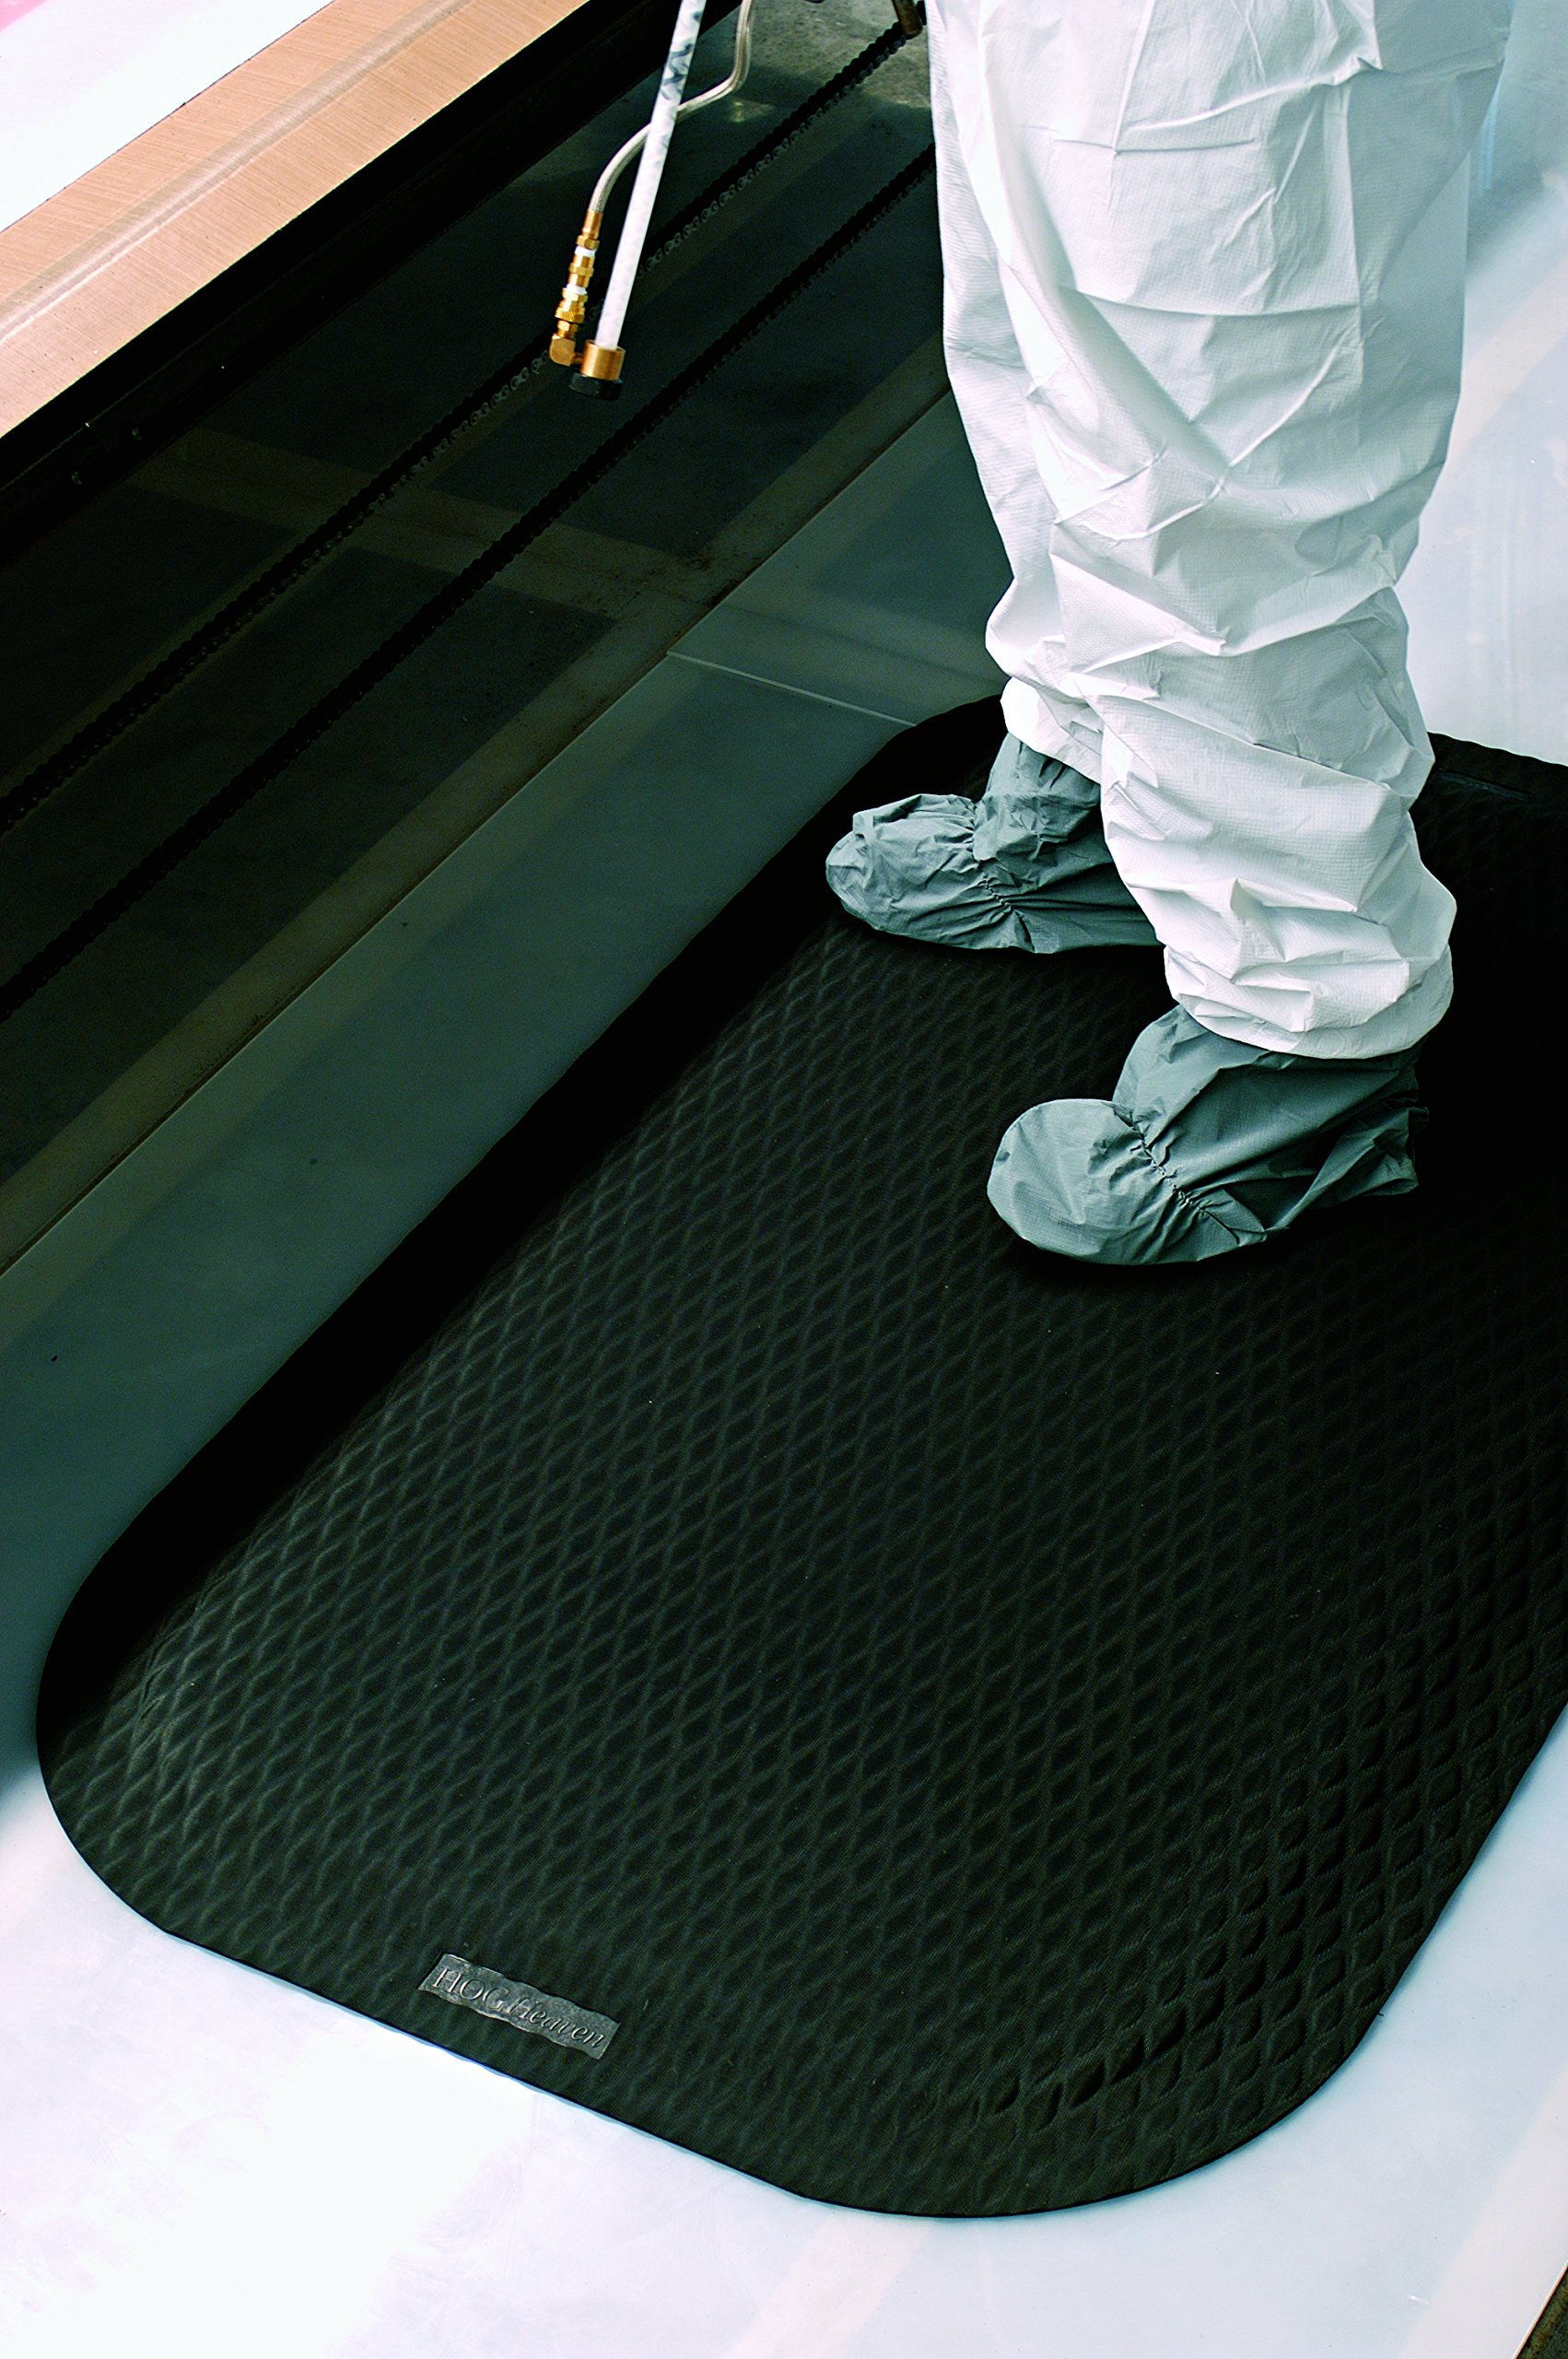 Hog Heaven Ergonomic Anti-Fatigue Mat 7/8'' 3' Length x 2' Width x Black by M+A Matting by M+A Matting (Image #4)